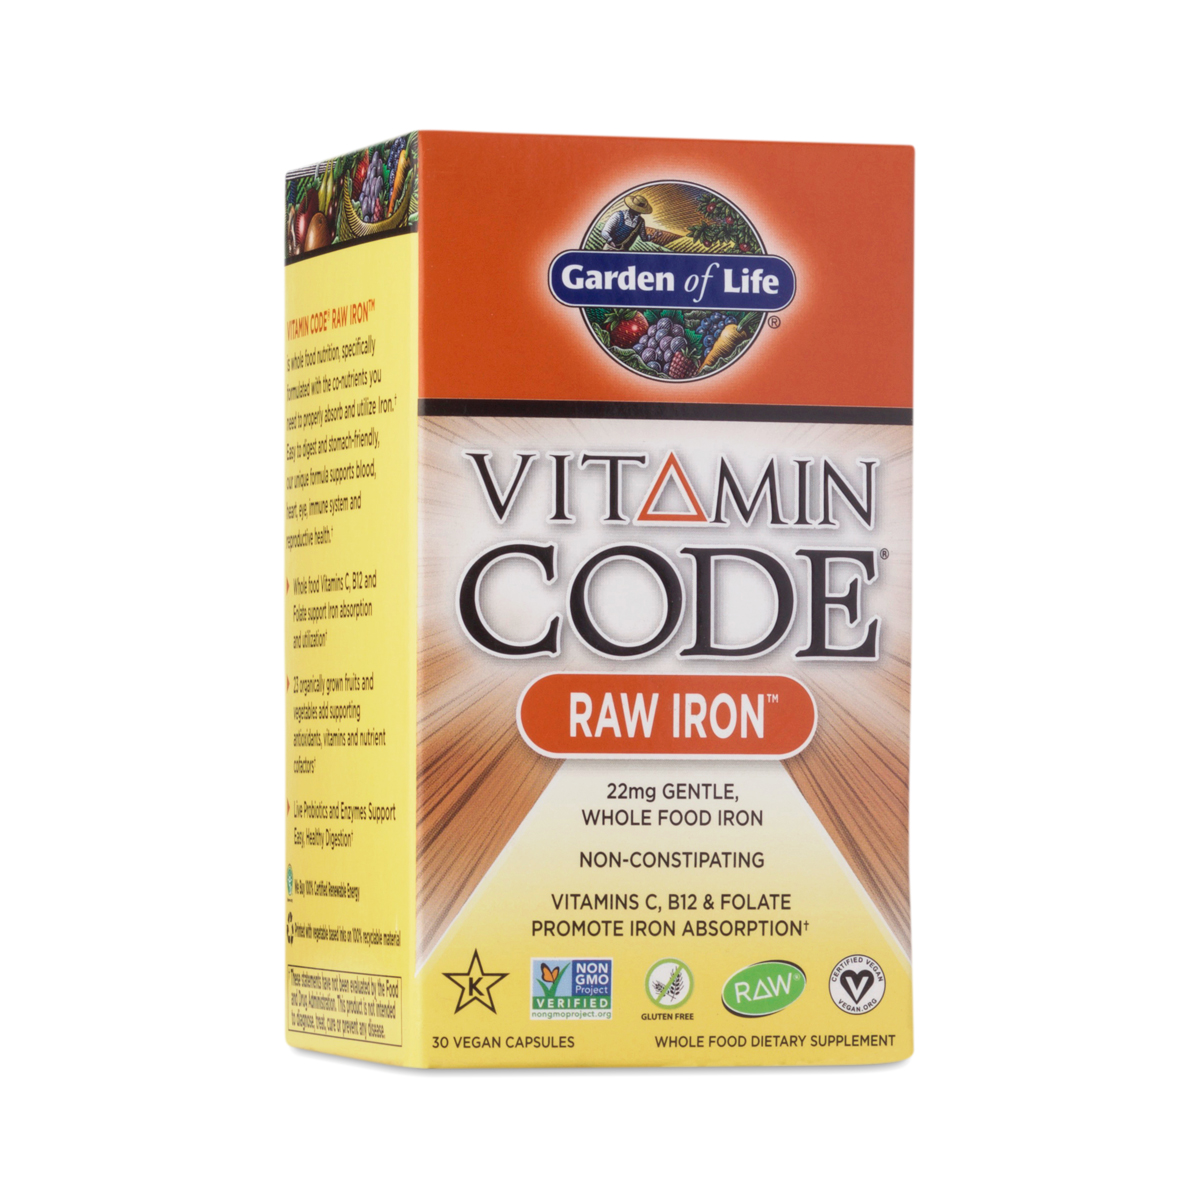 Vitamin Code Raw Iron Supplement By Garden Of Life